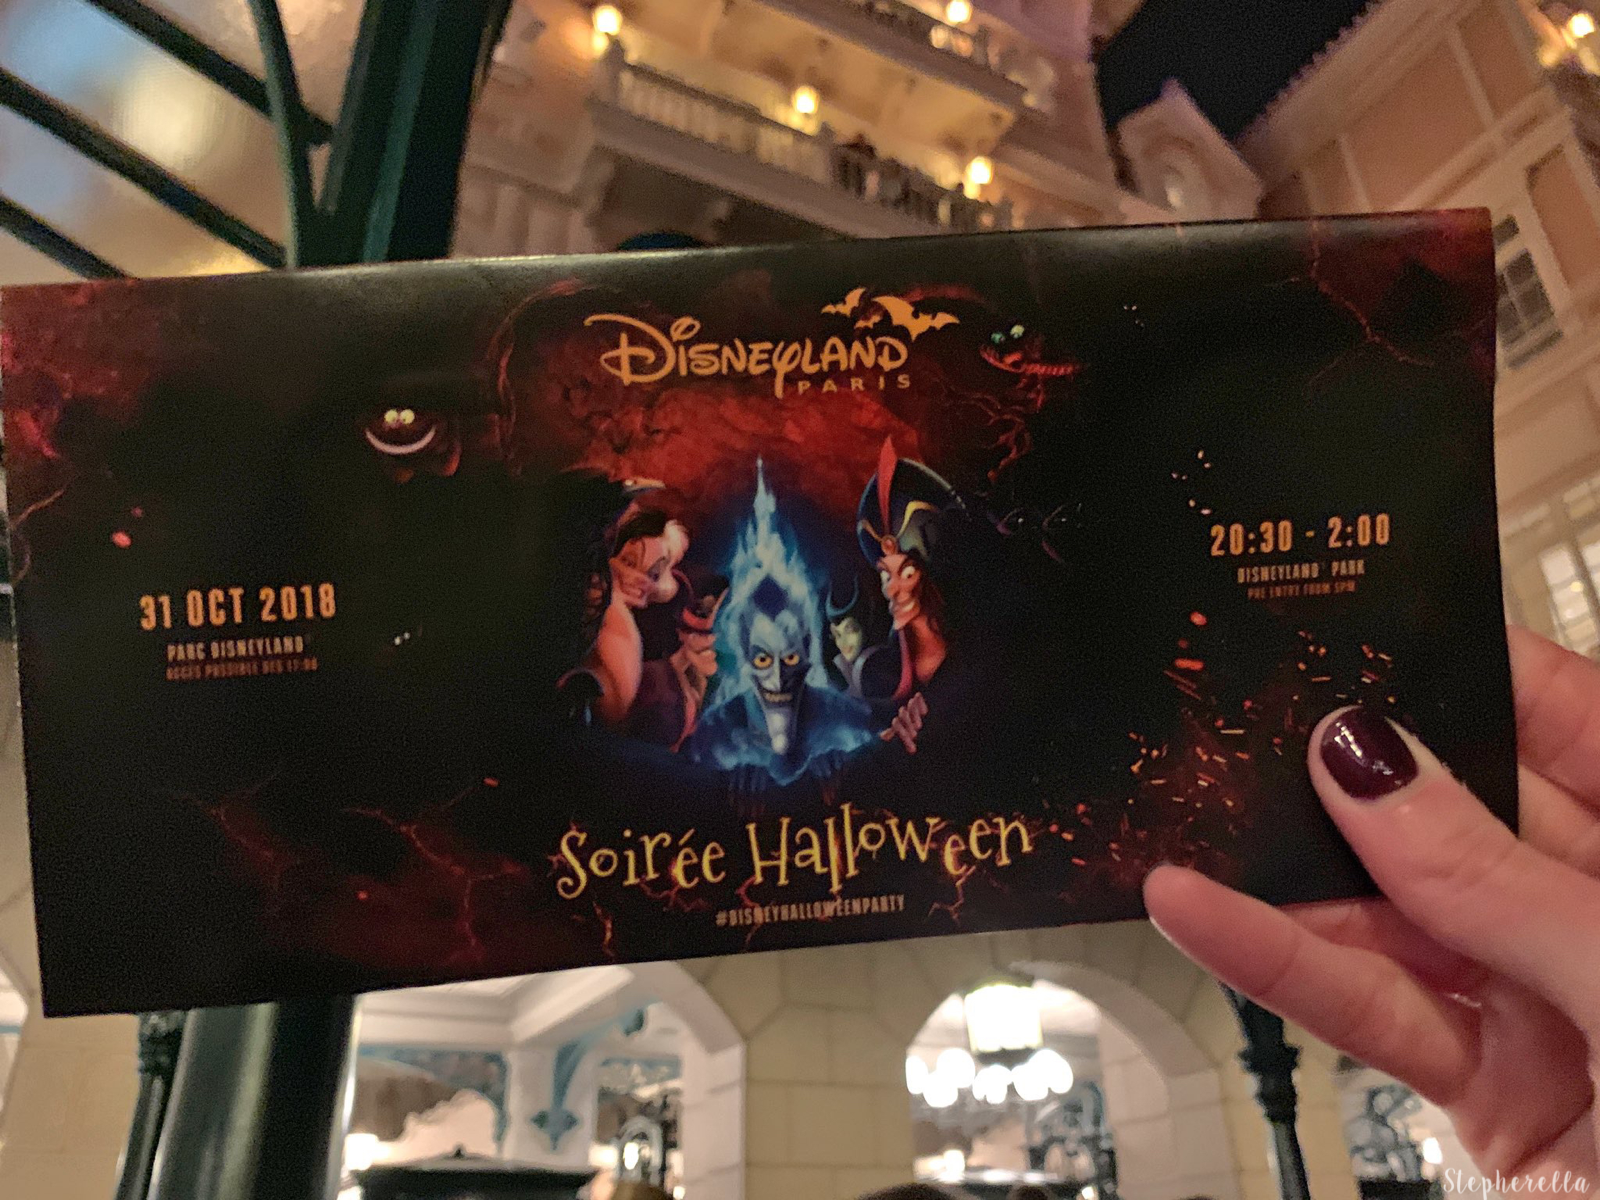 Halloween Soiree Programme Disneyland Paris